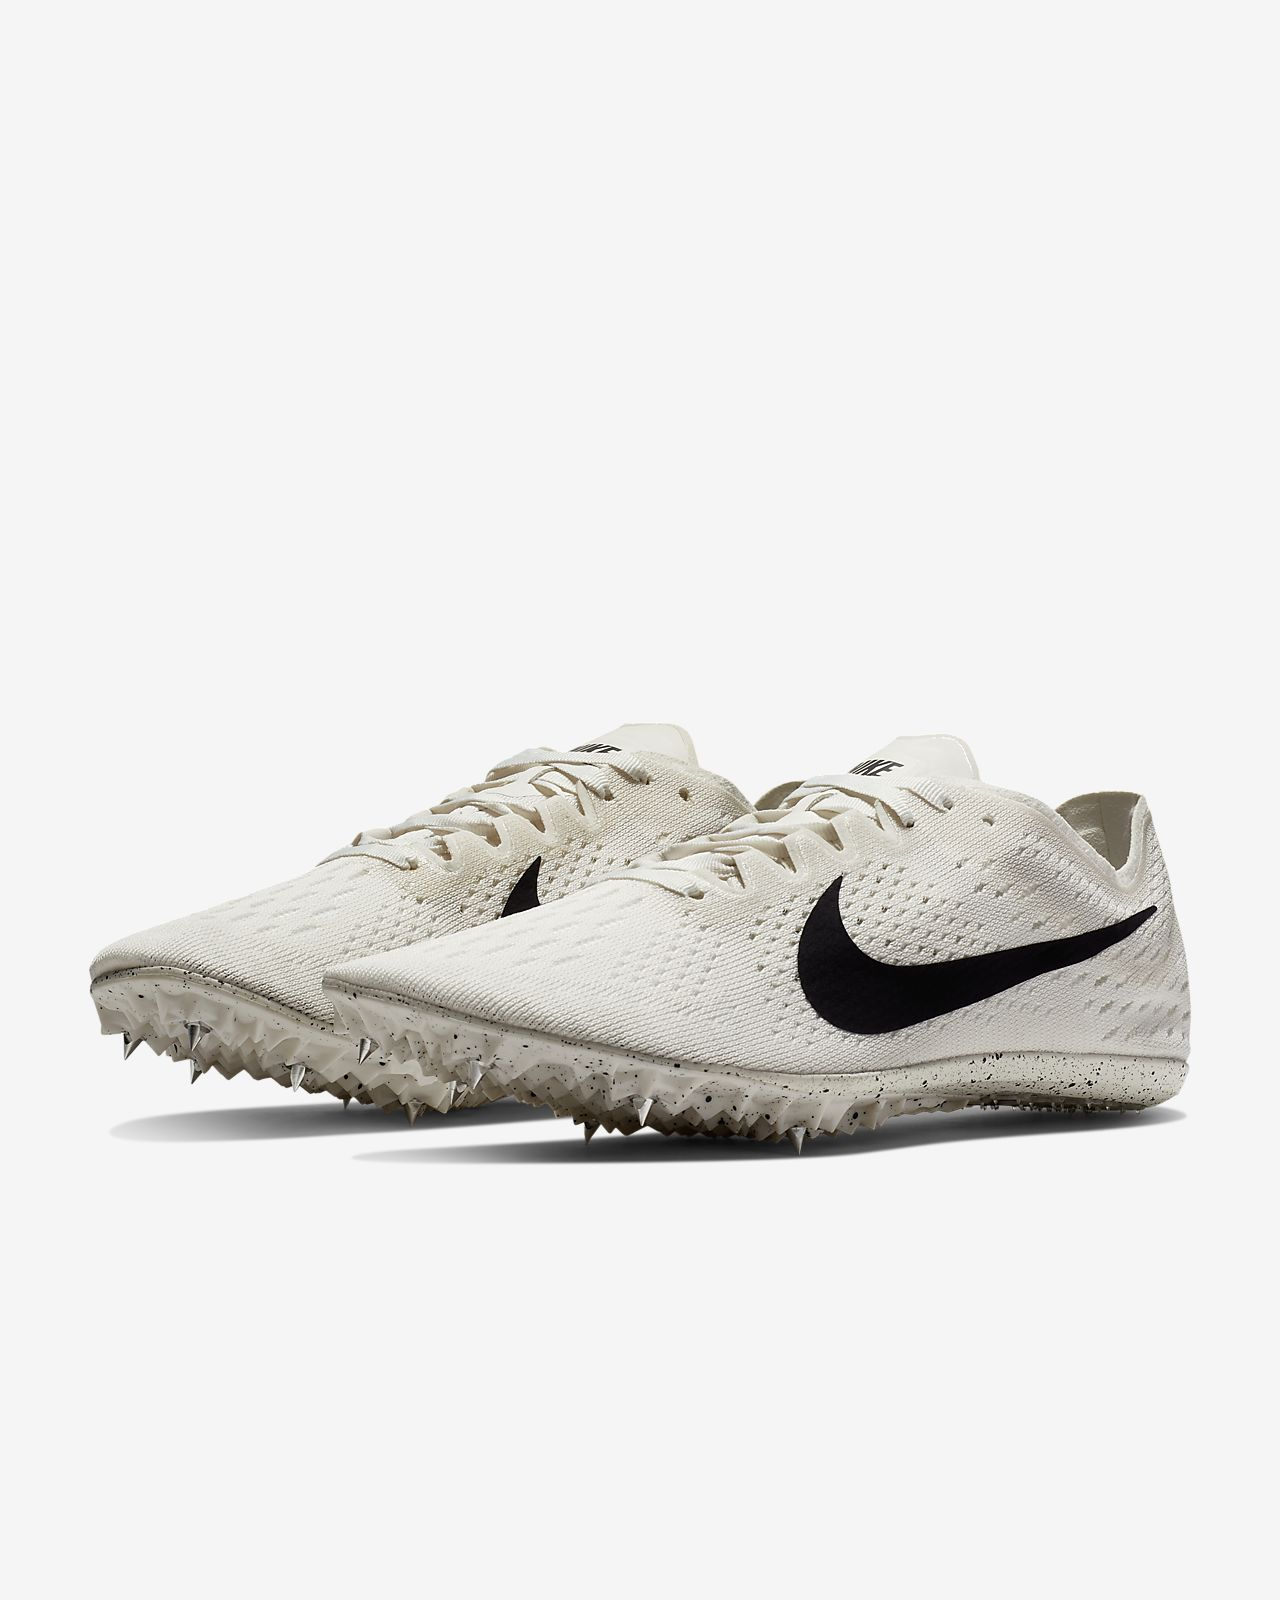 purchase cheap 5419d 915a1 ... Nike Zoom Victory 3 Unisex Racing Spike